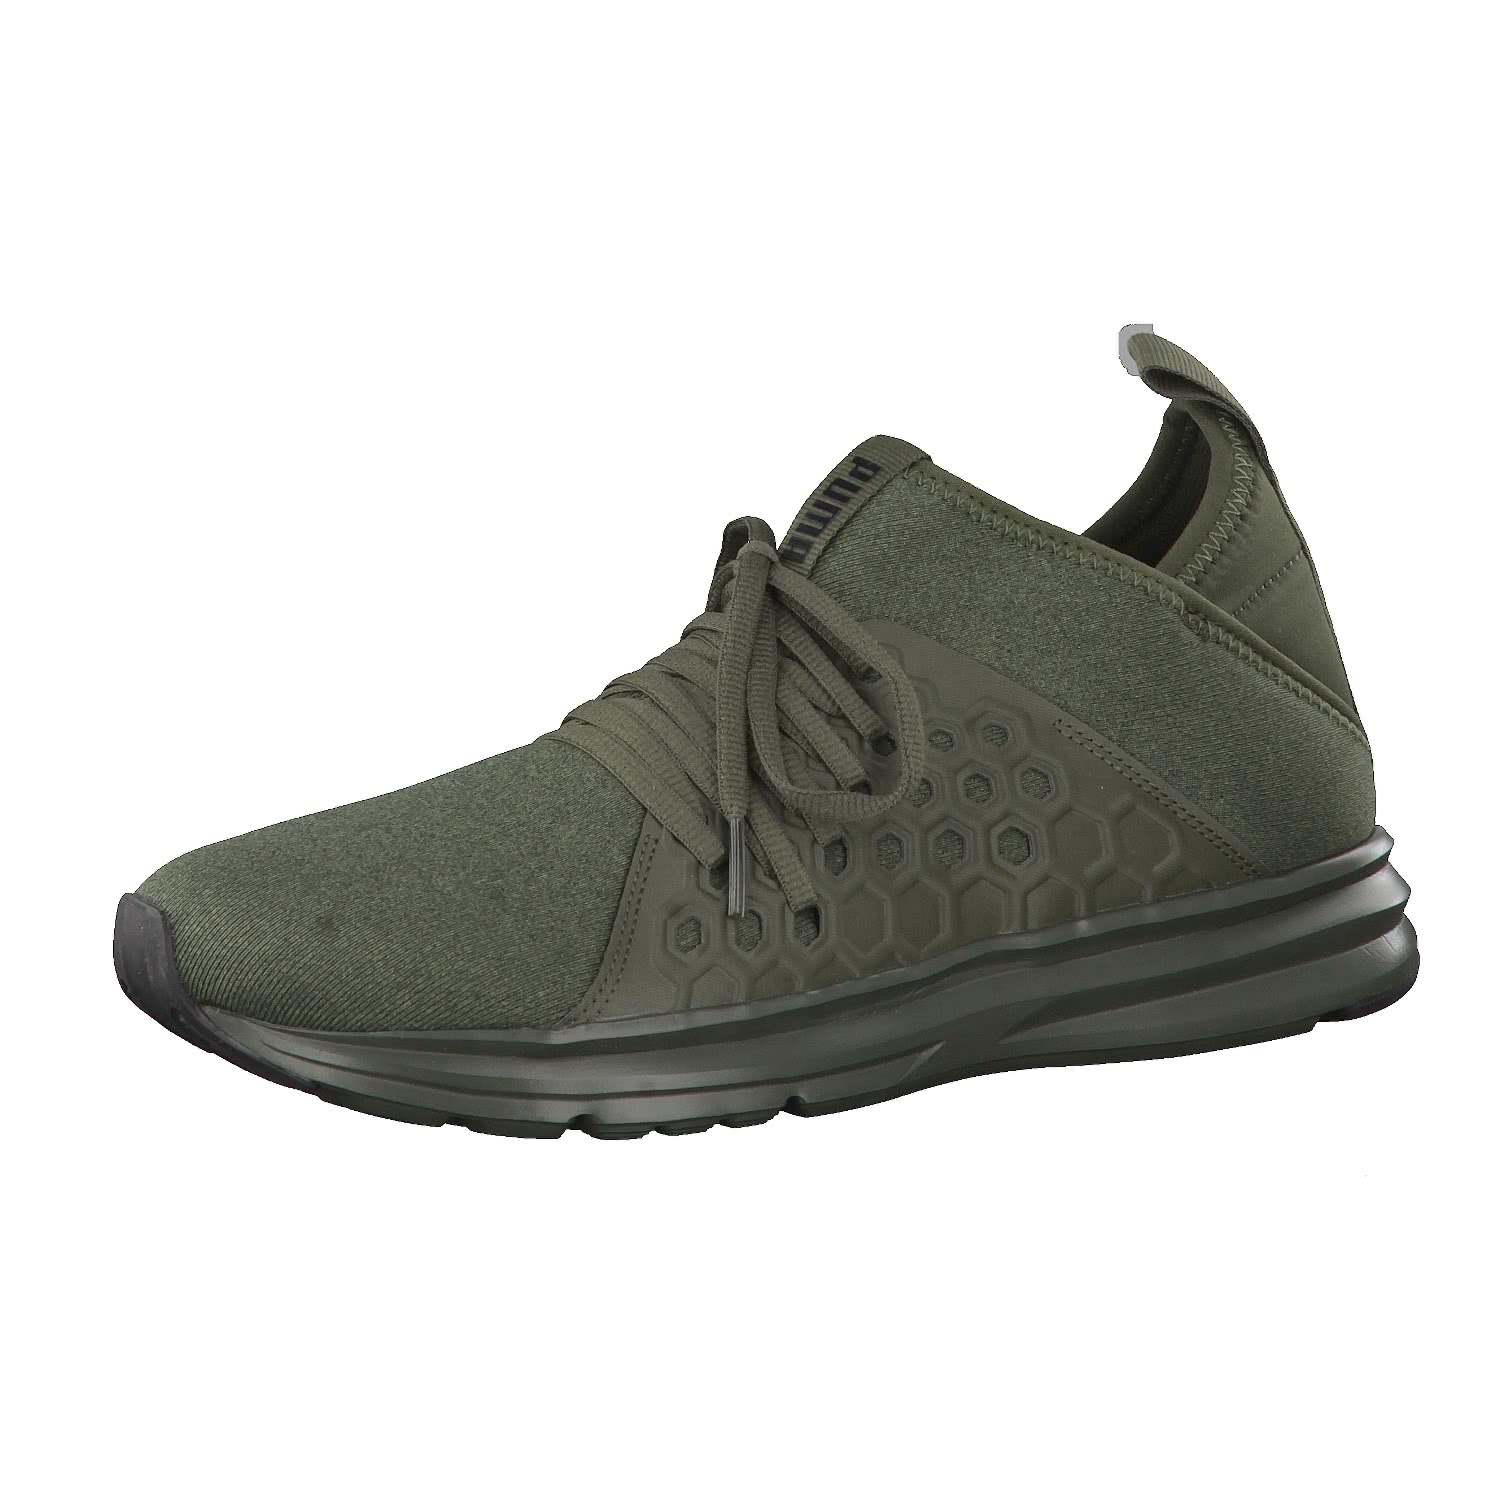 ENZO STREET - Laufschuh Neutral - forest night/puma black